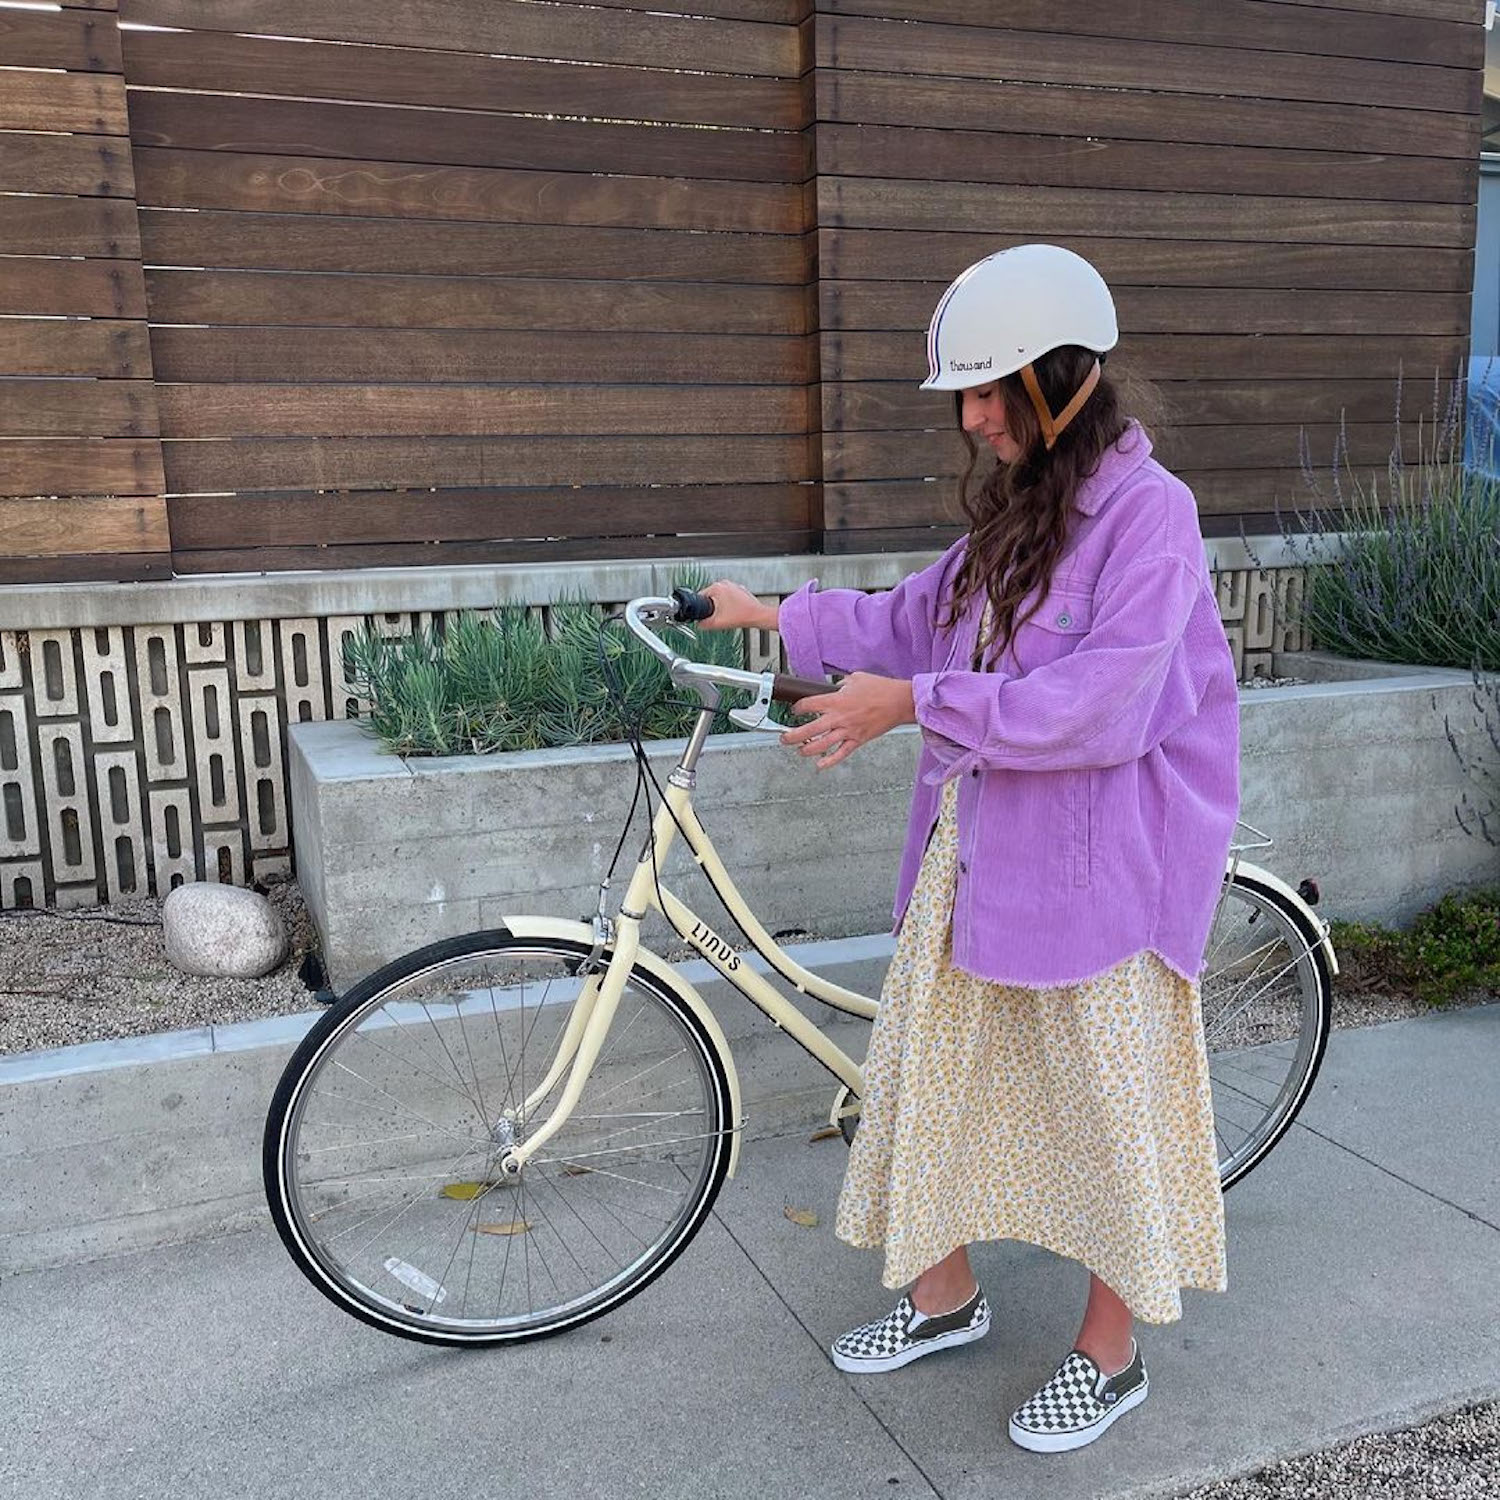 person riding a bike and wearing a Thousand helmet